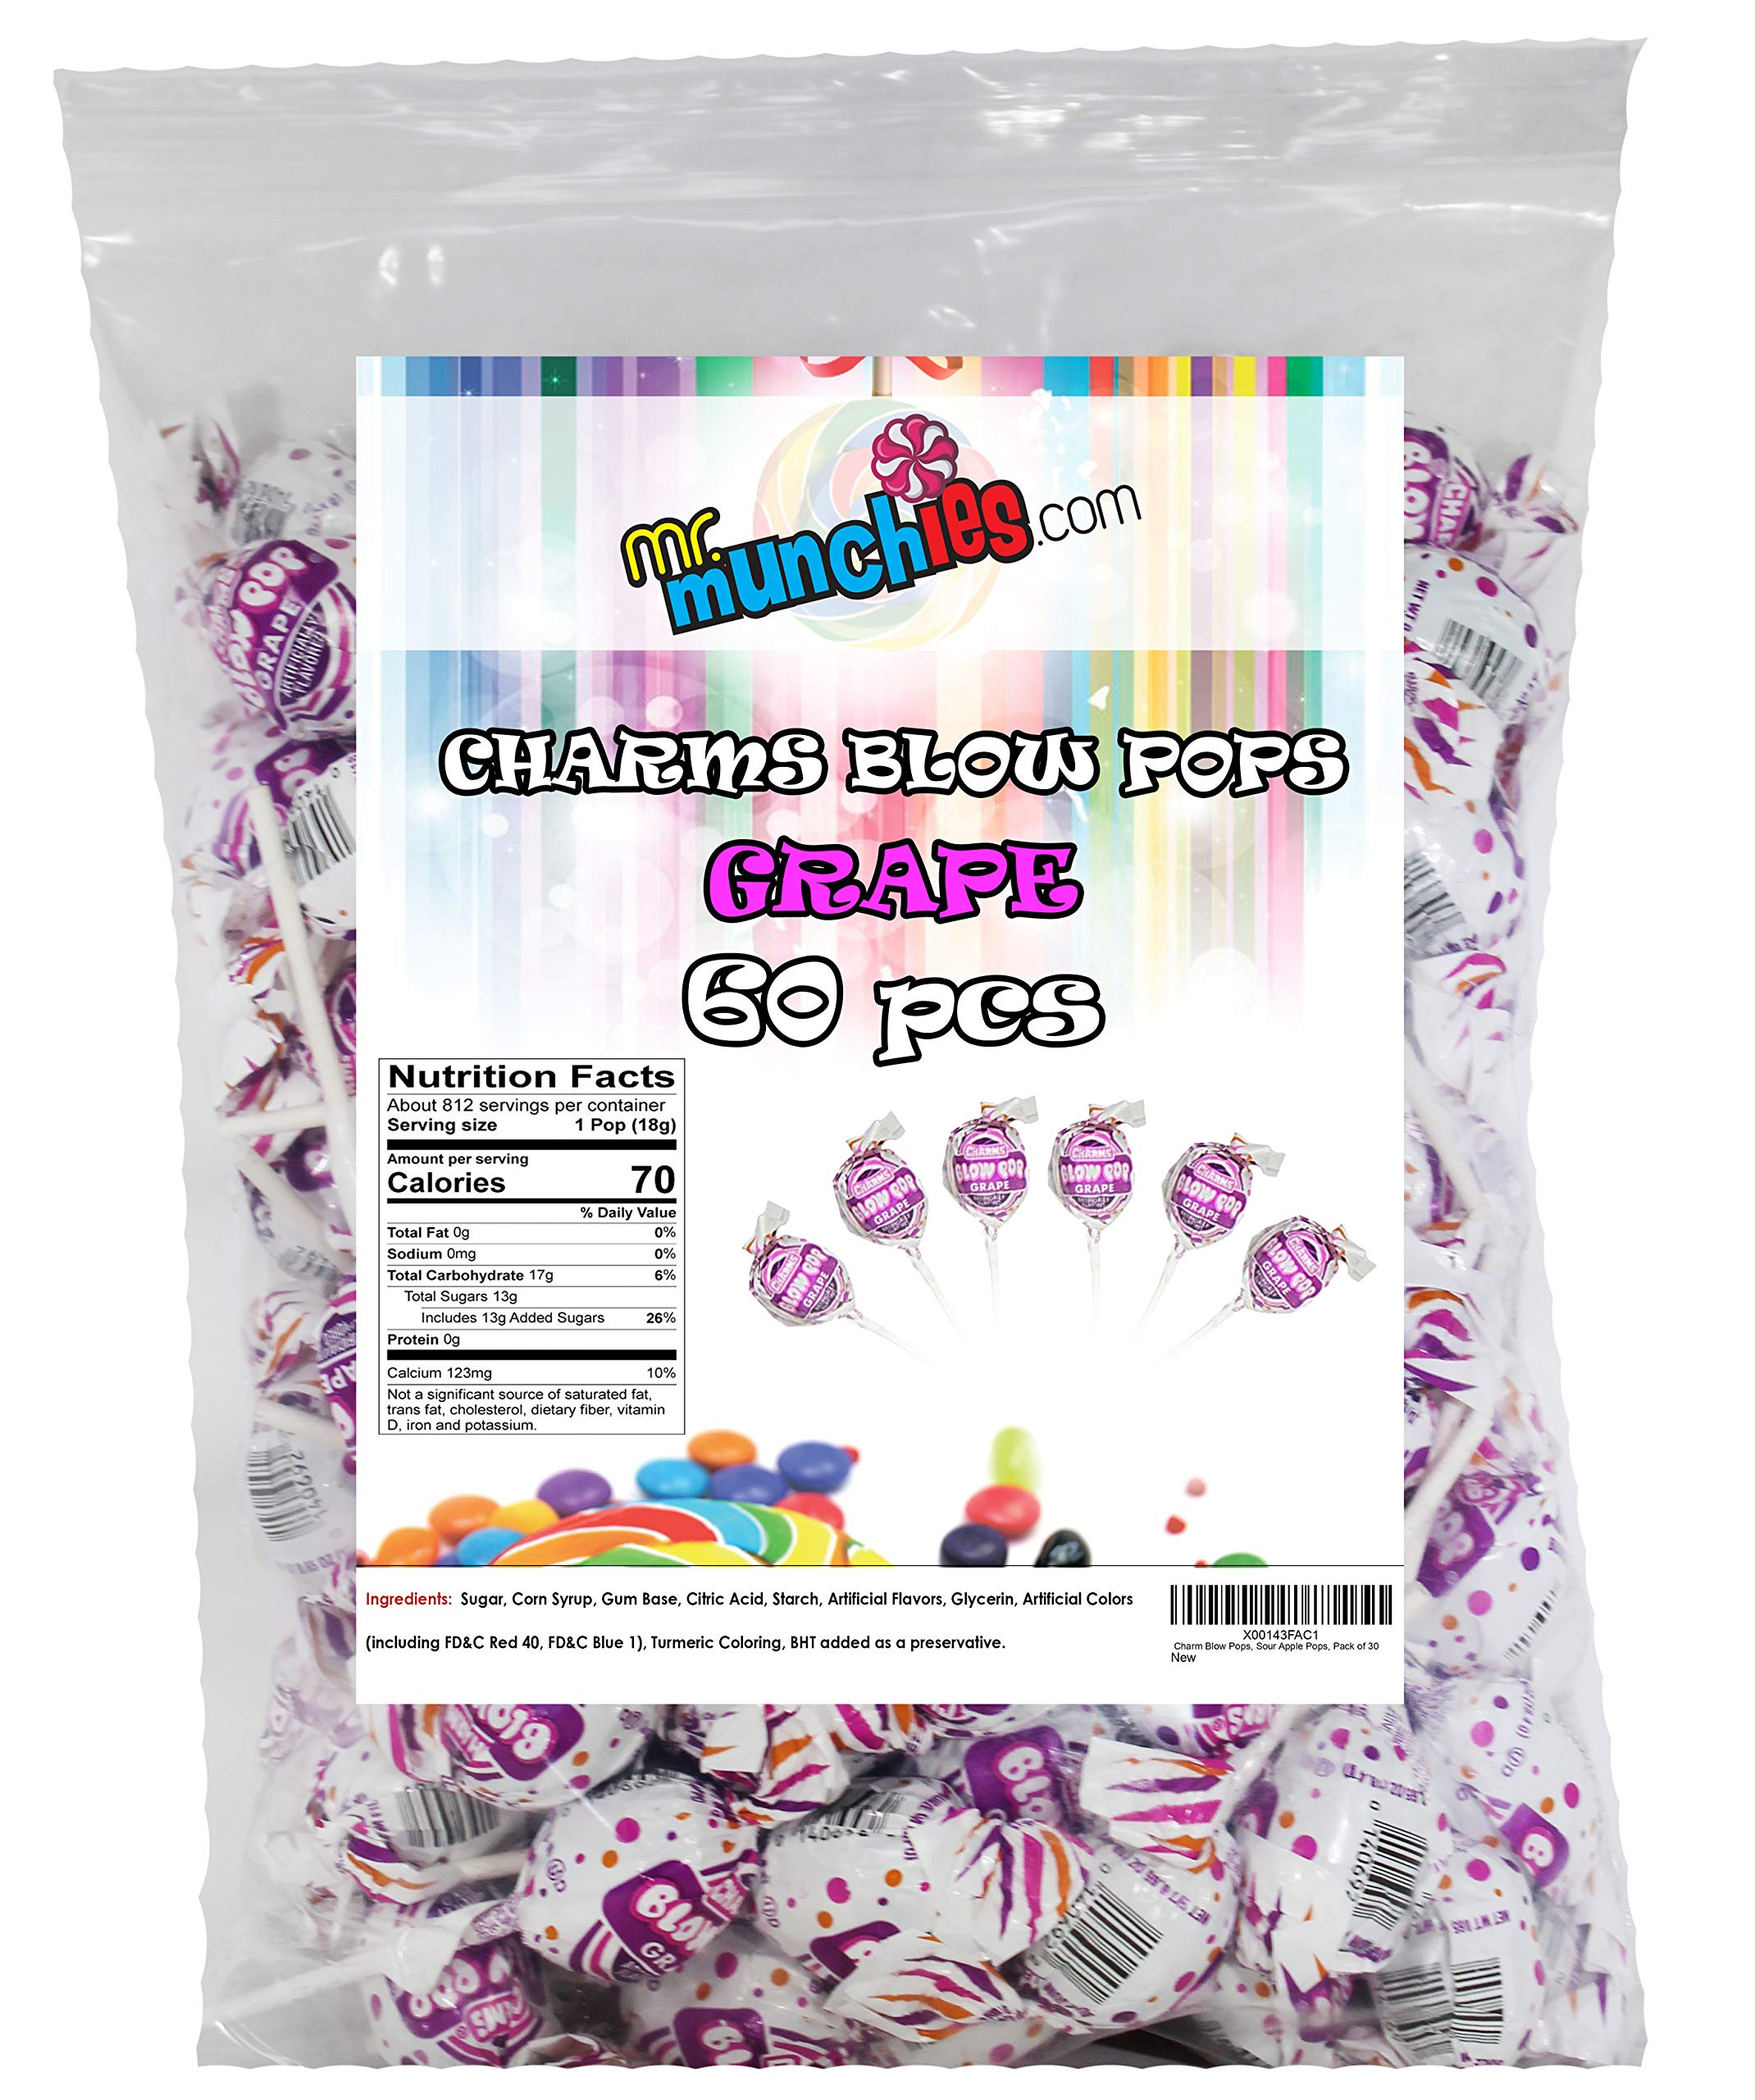 Charm Blow Pops, Grape Pops, Pack of 60 by Blow Pops